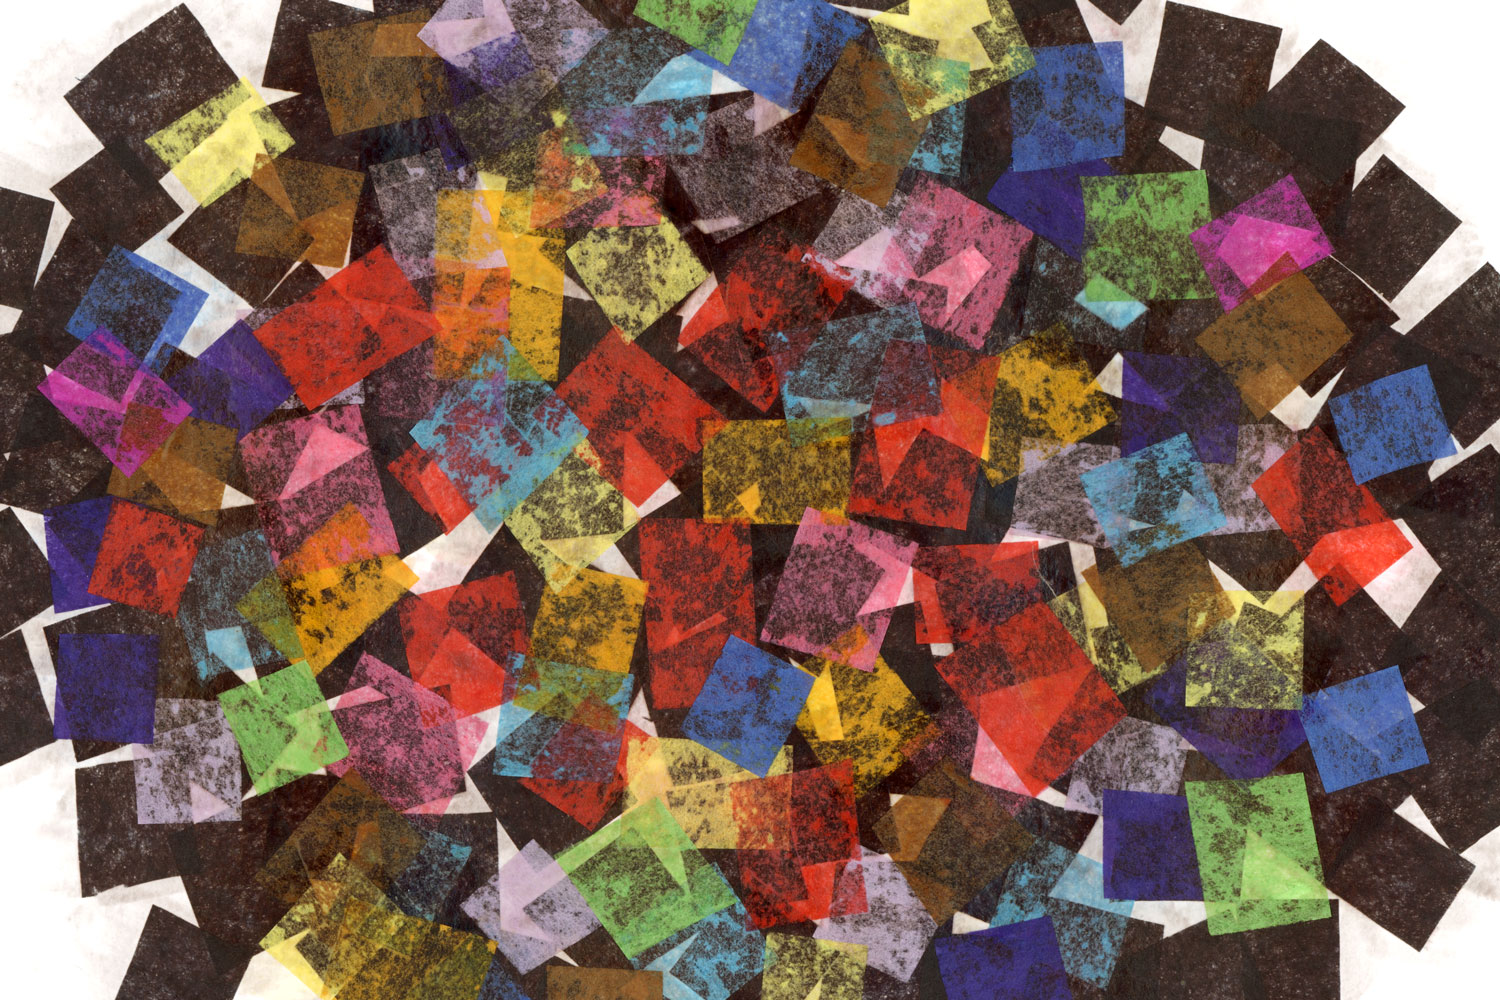 An abstract illustration of many different colored overlapping squares cut from tissue paper.